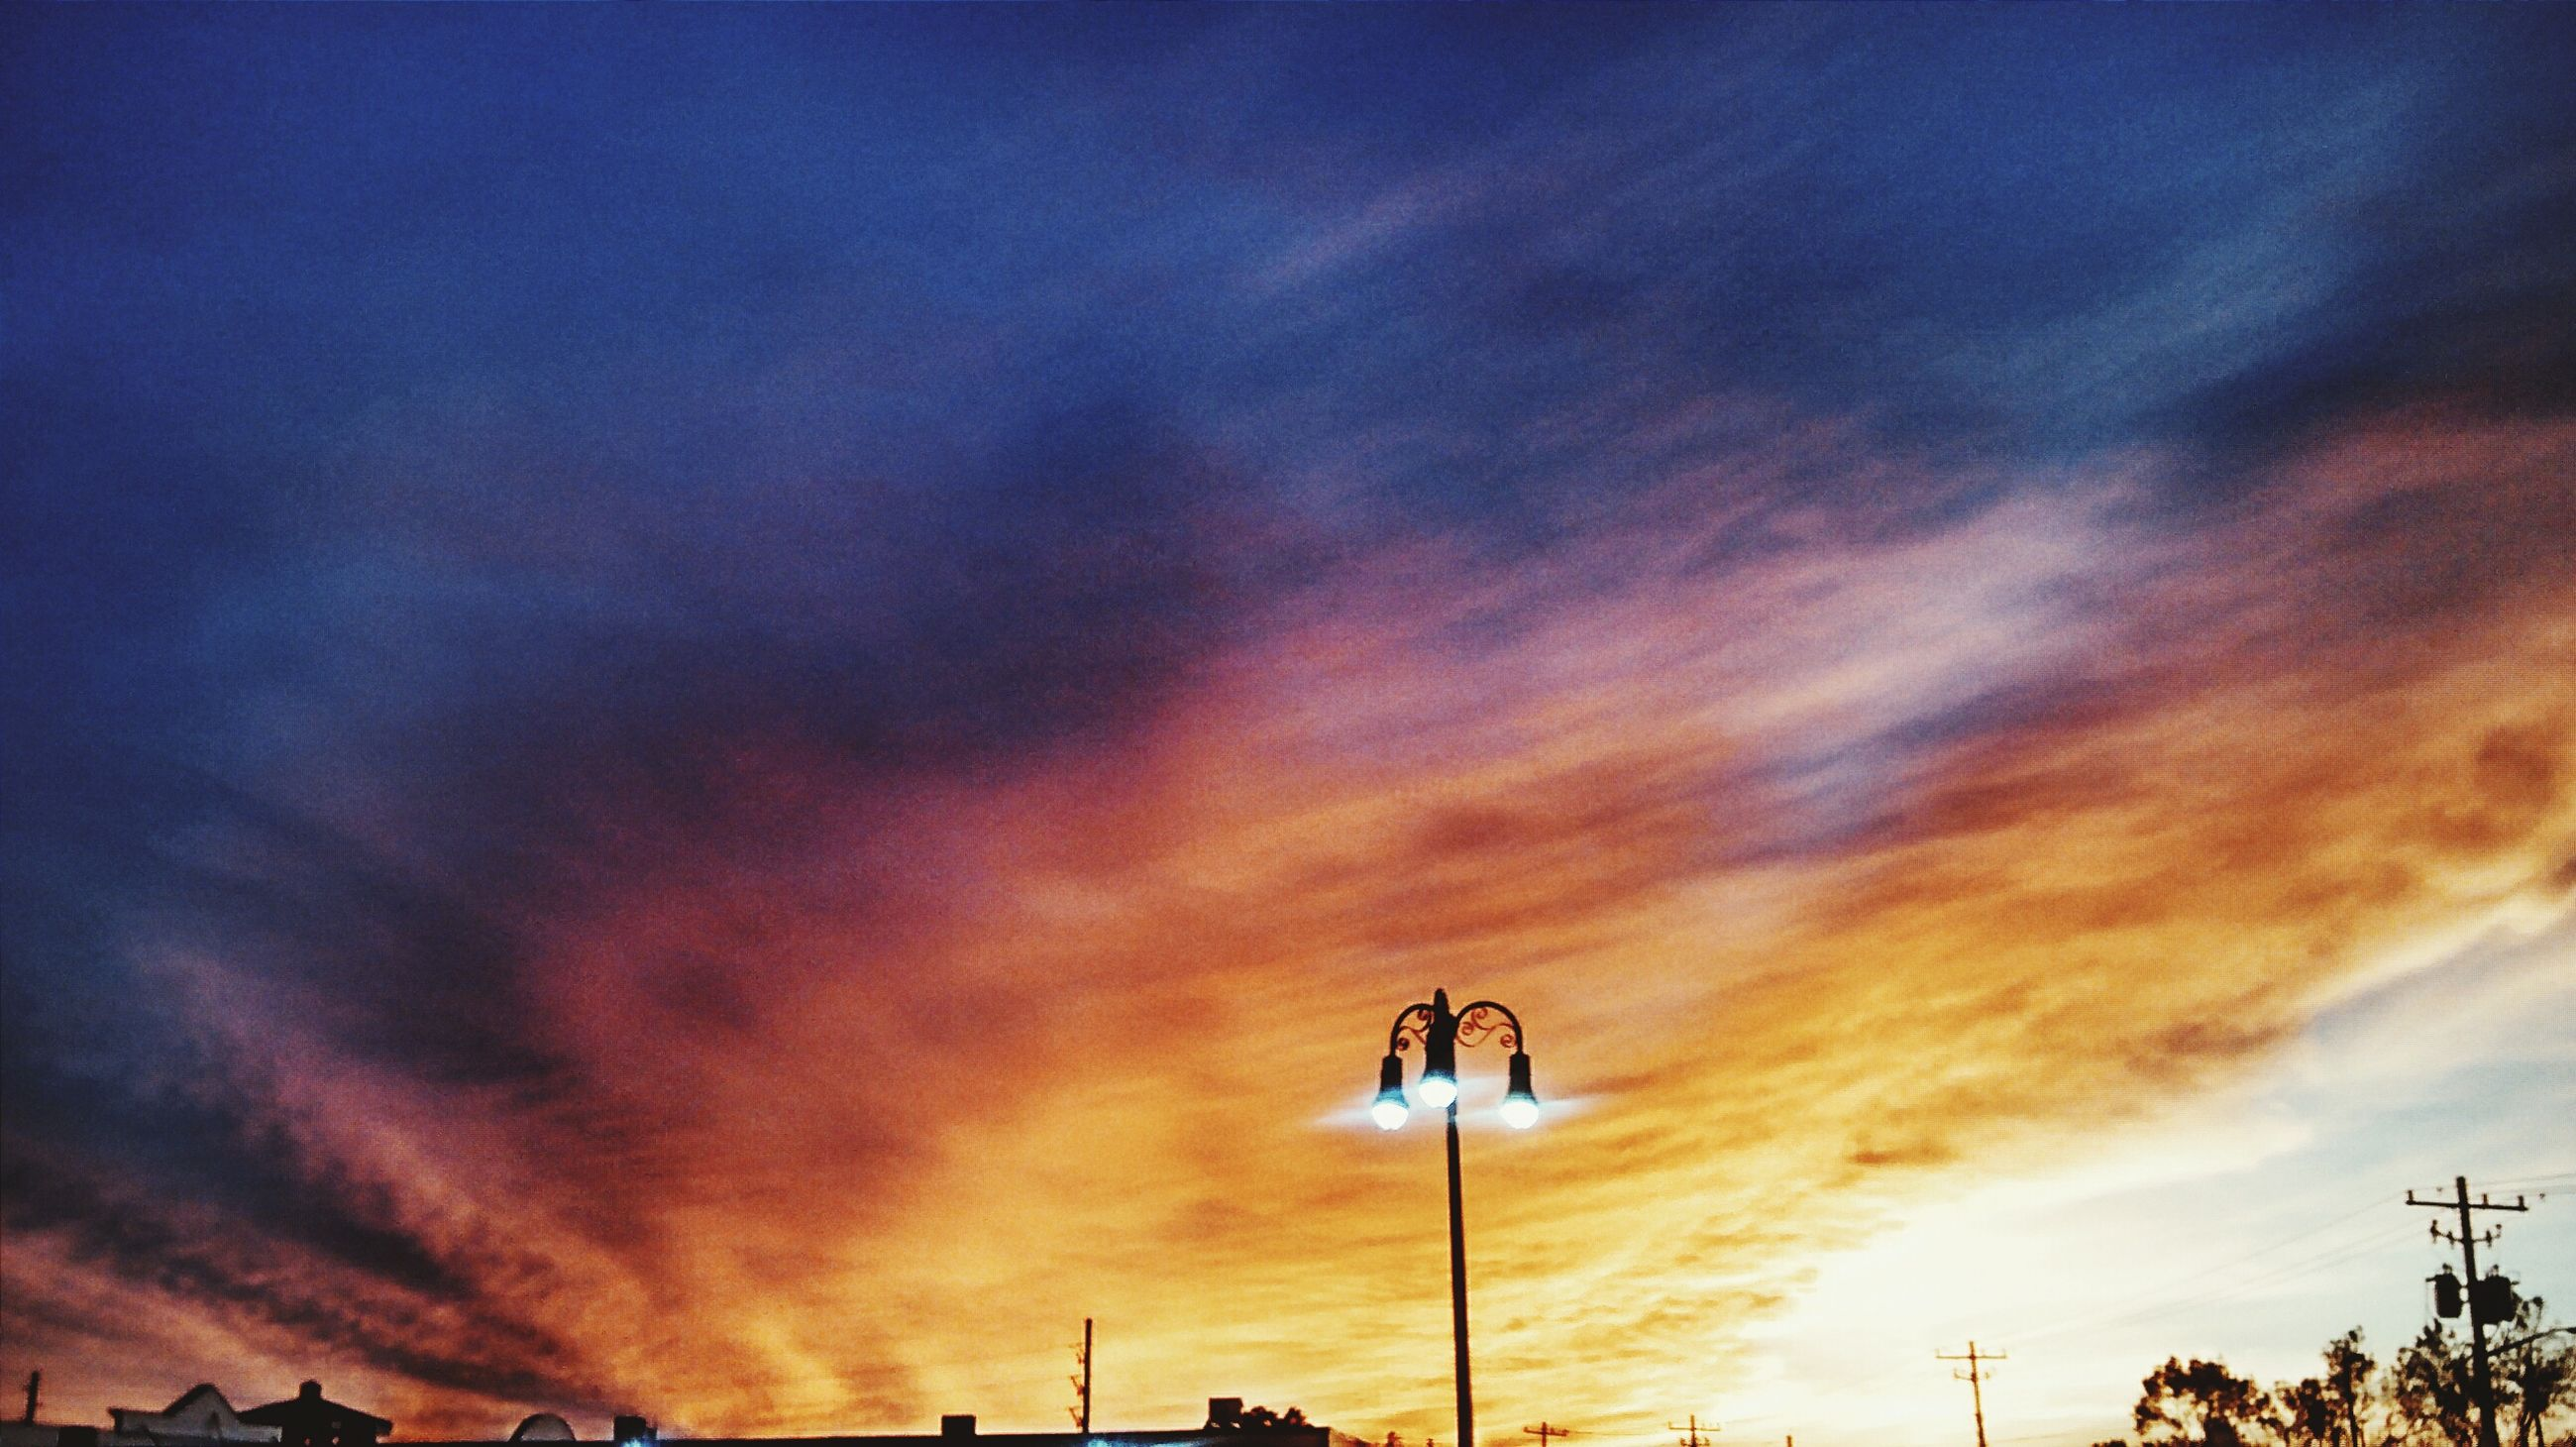 sky, sunset, cloud - sky, low angle view, street light, silhouette, cloudy, lighting equipment, beauty in nature, dramatic sky, weather, nature, scenics, cloud, dusk, overcast, orange color, power line, tranquility, electricity